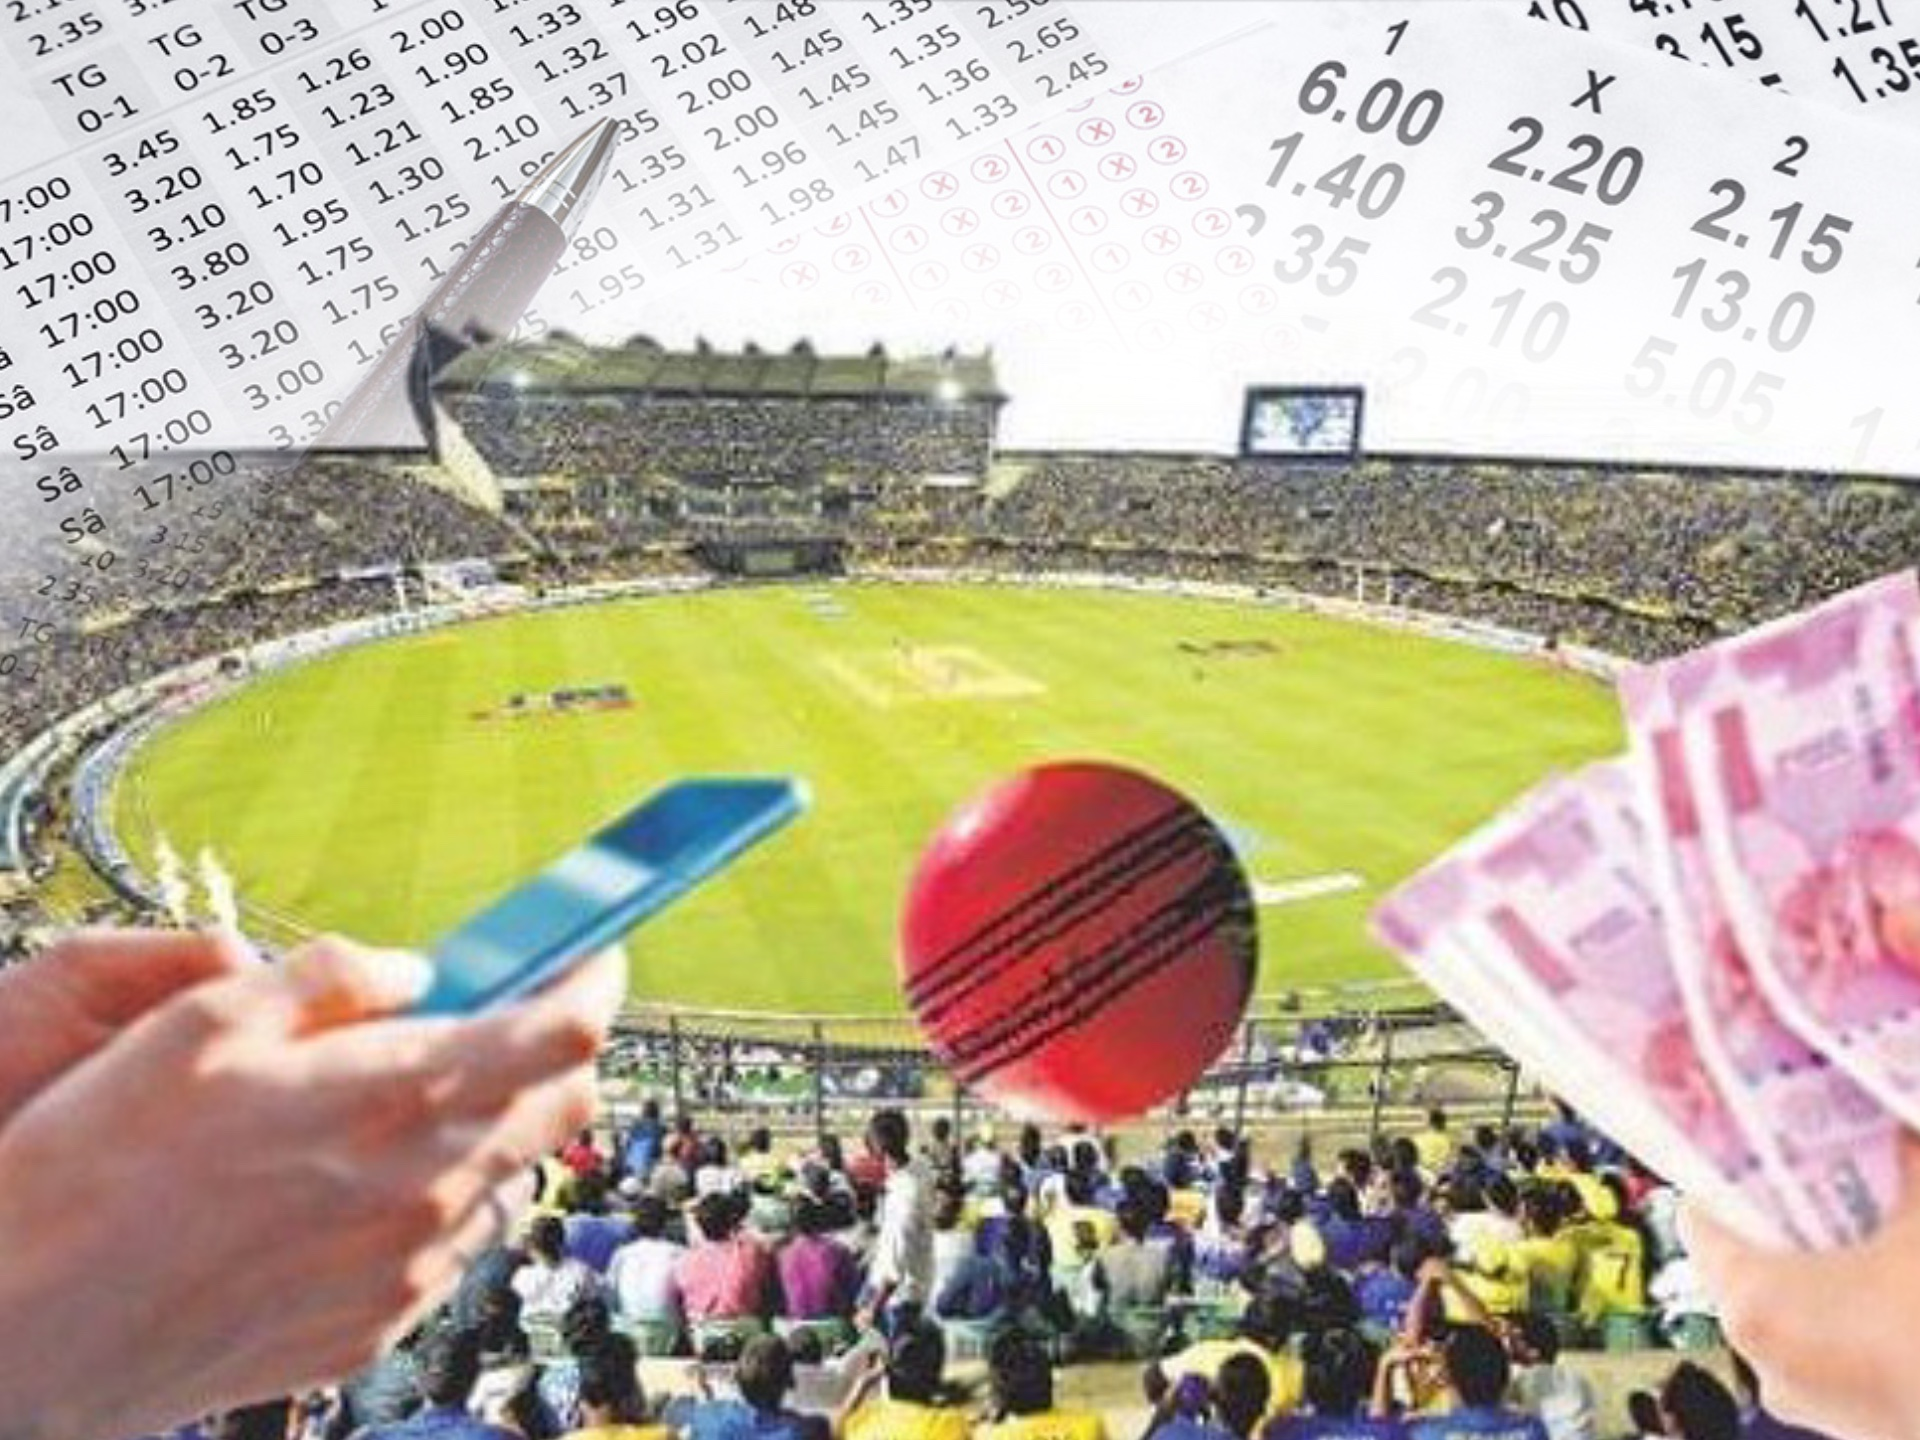 Bet on cricket only amount of money that you are ready to lose.